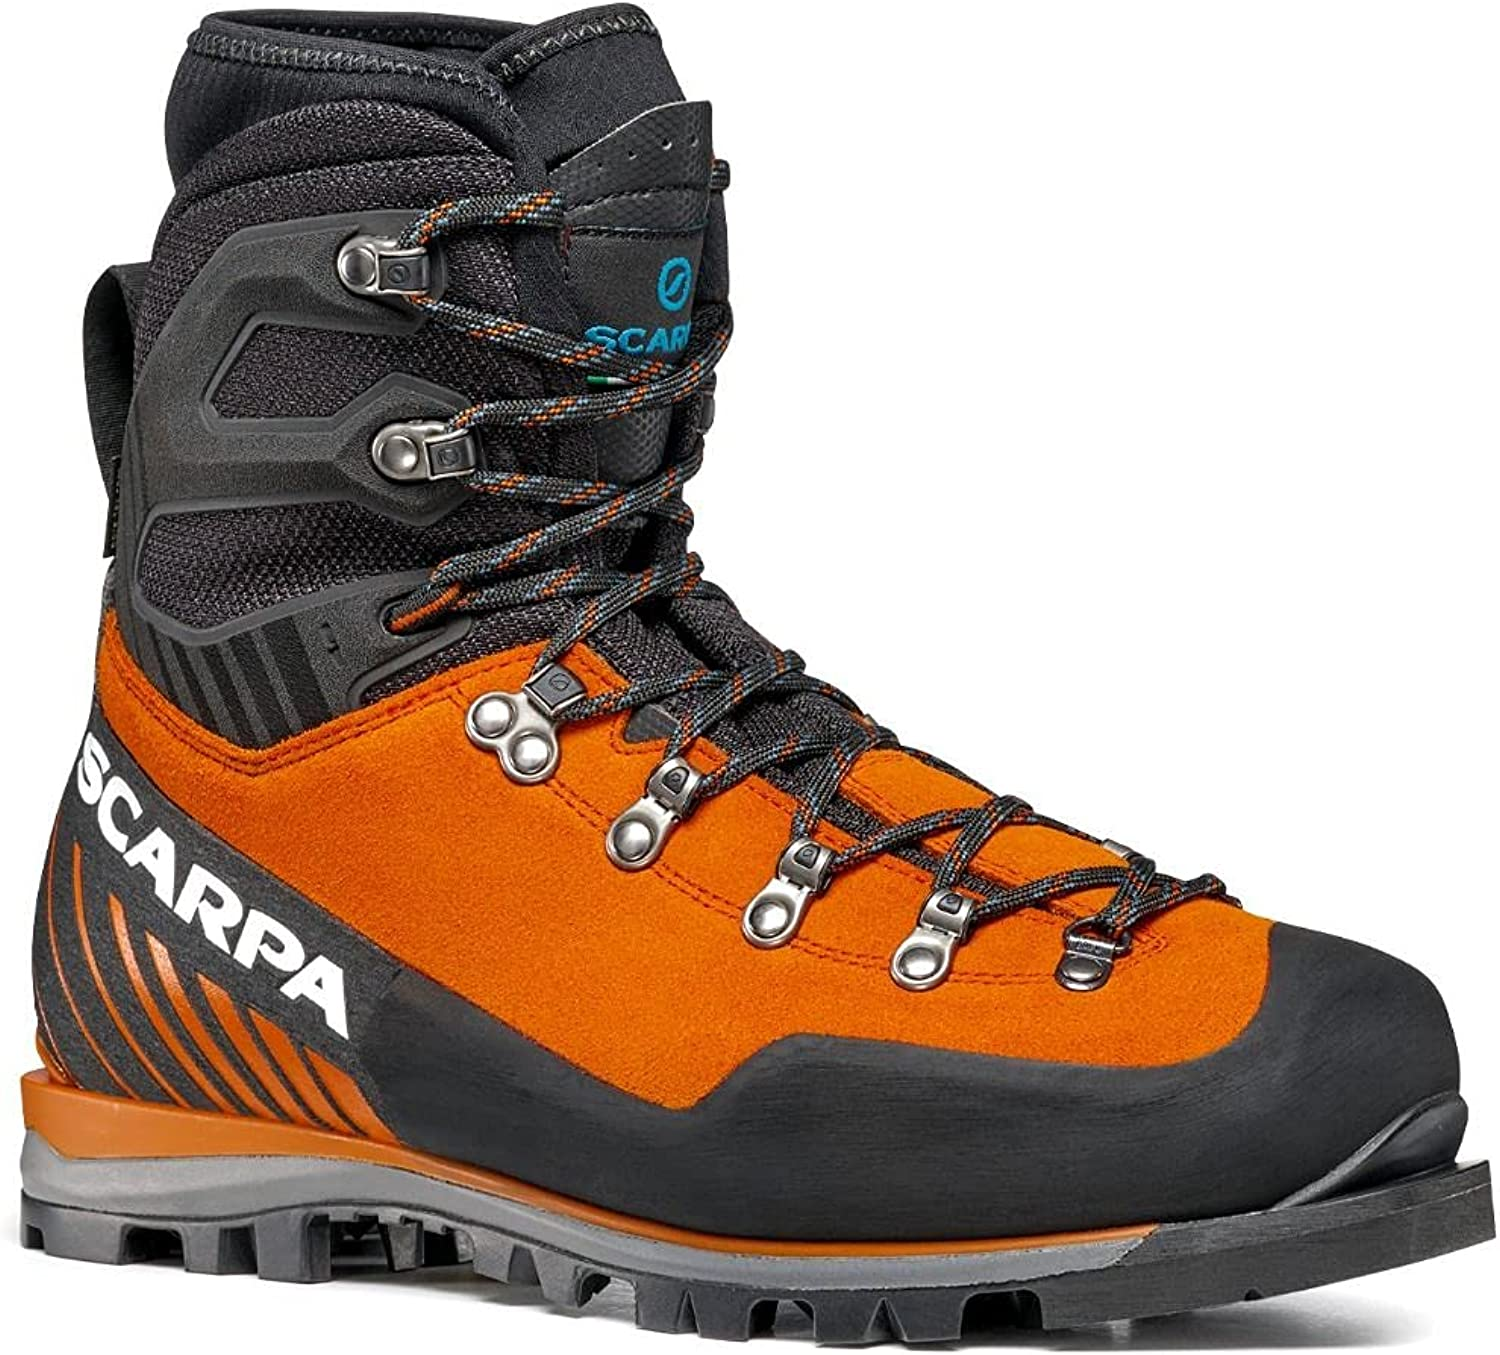 SCARPA 2021 spring and summer new New arrival Men's Mont Blanc Pro GTX Hi Waterproof Boots for GORE-TEX